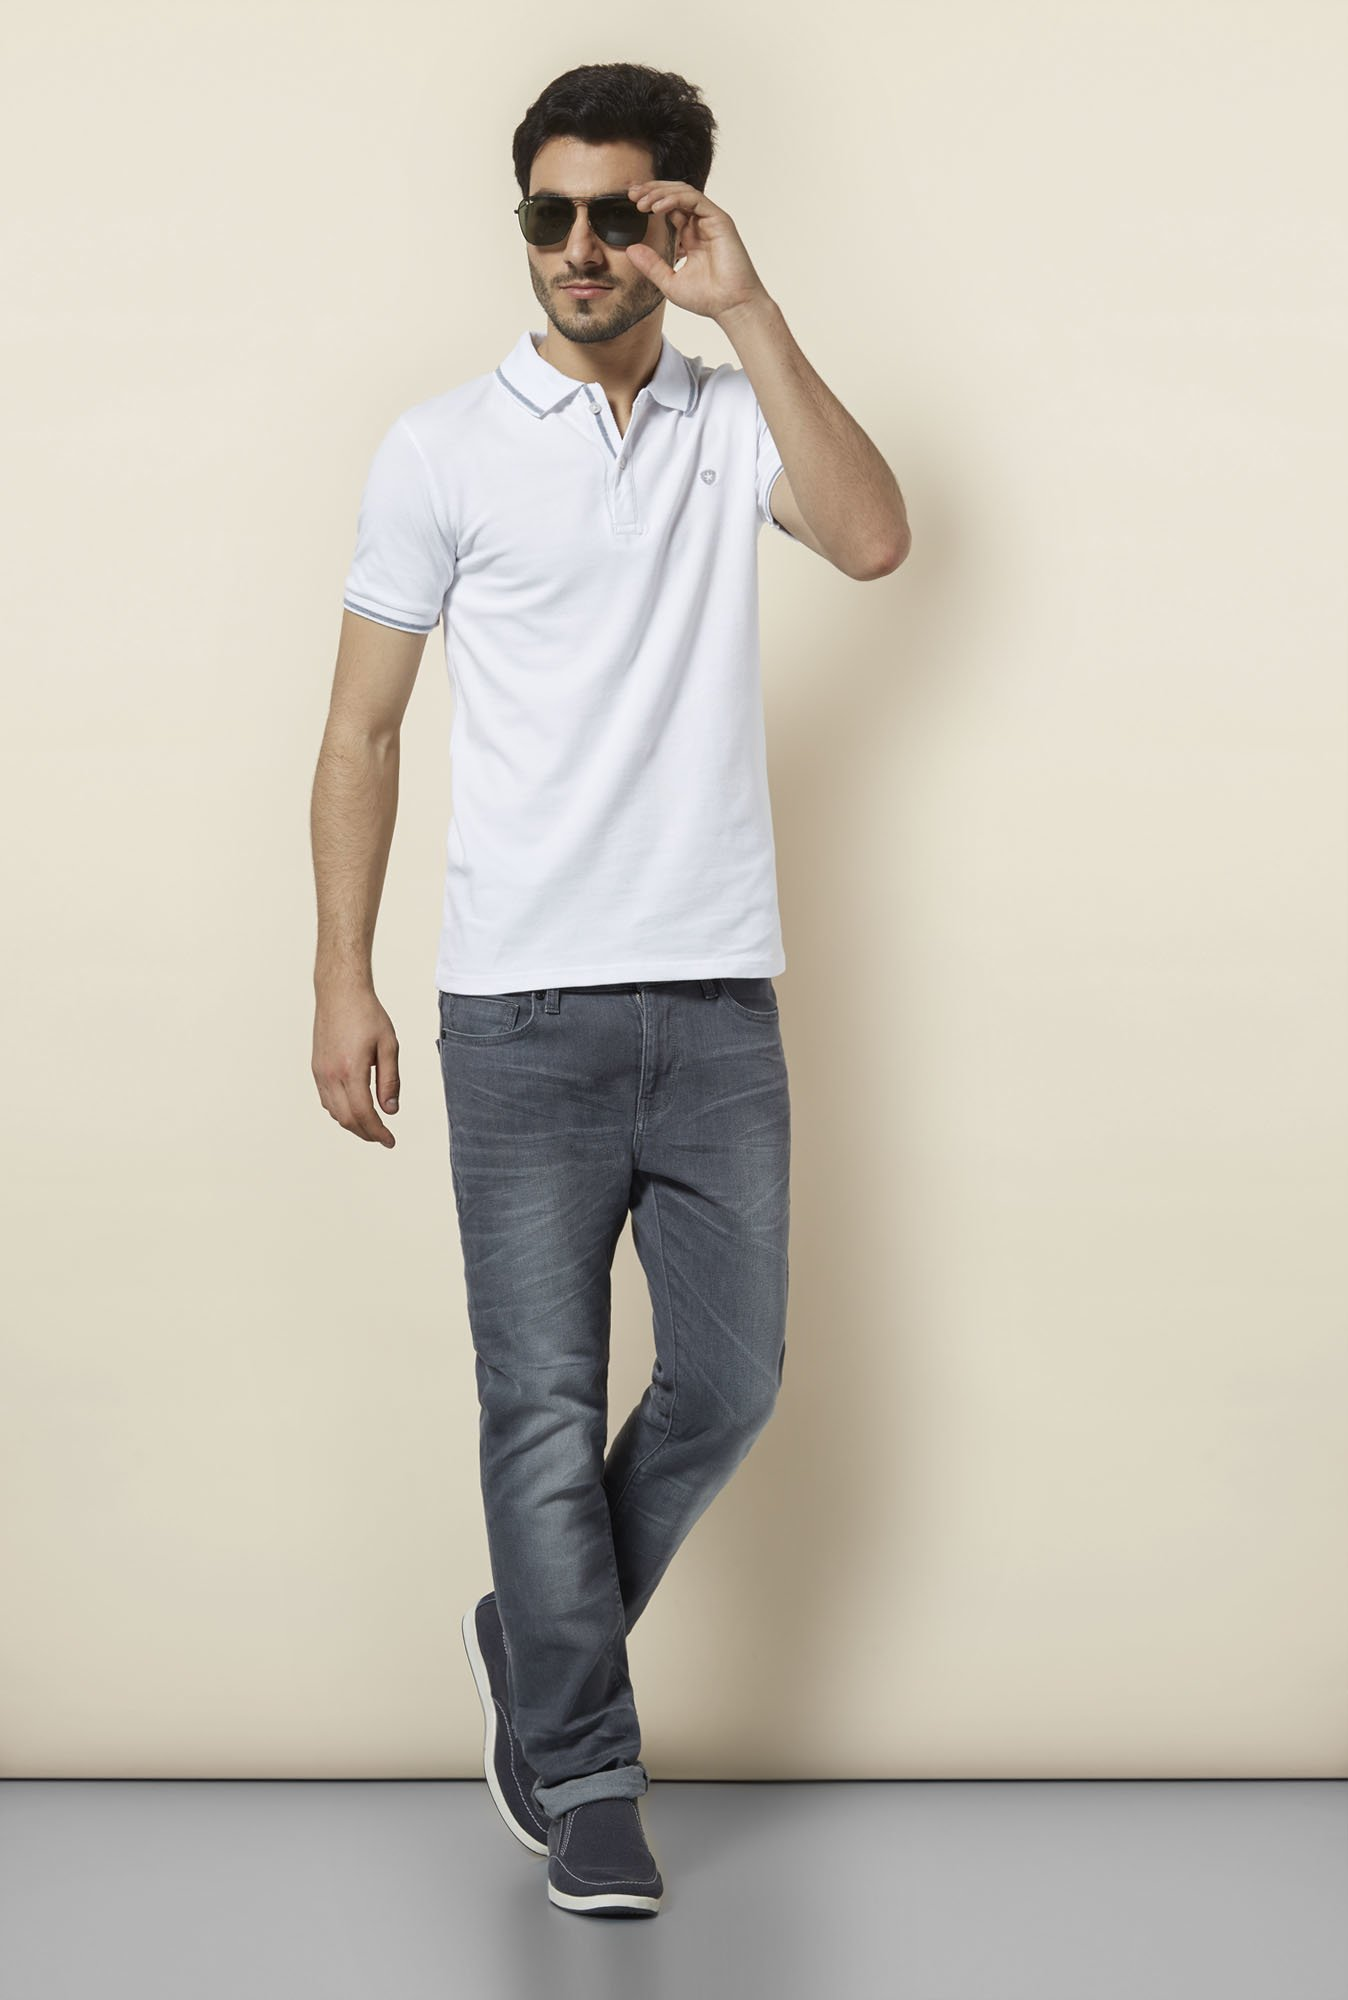 celio* White Solid Polo T-Shirt